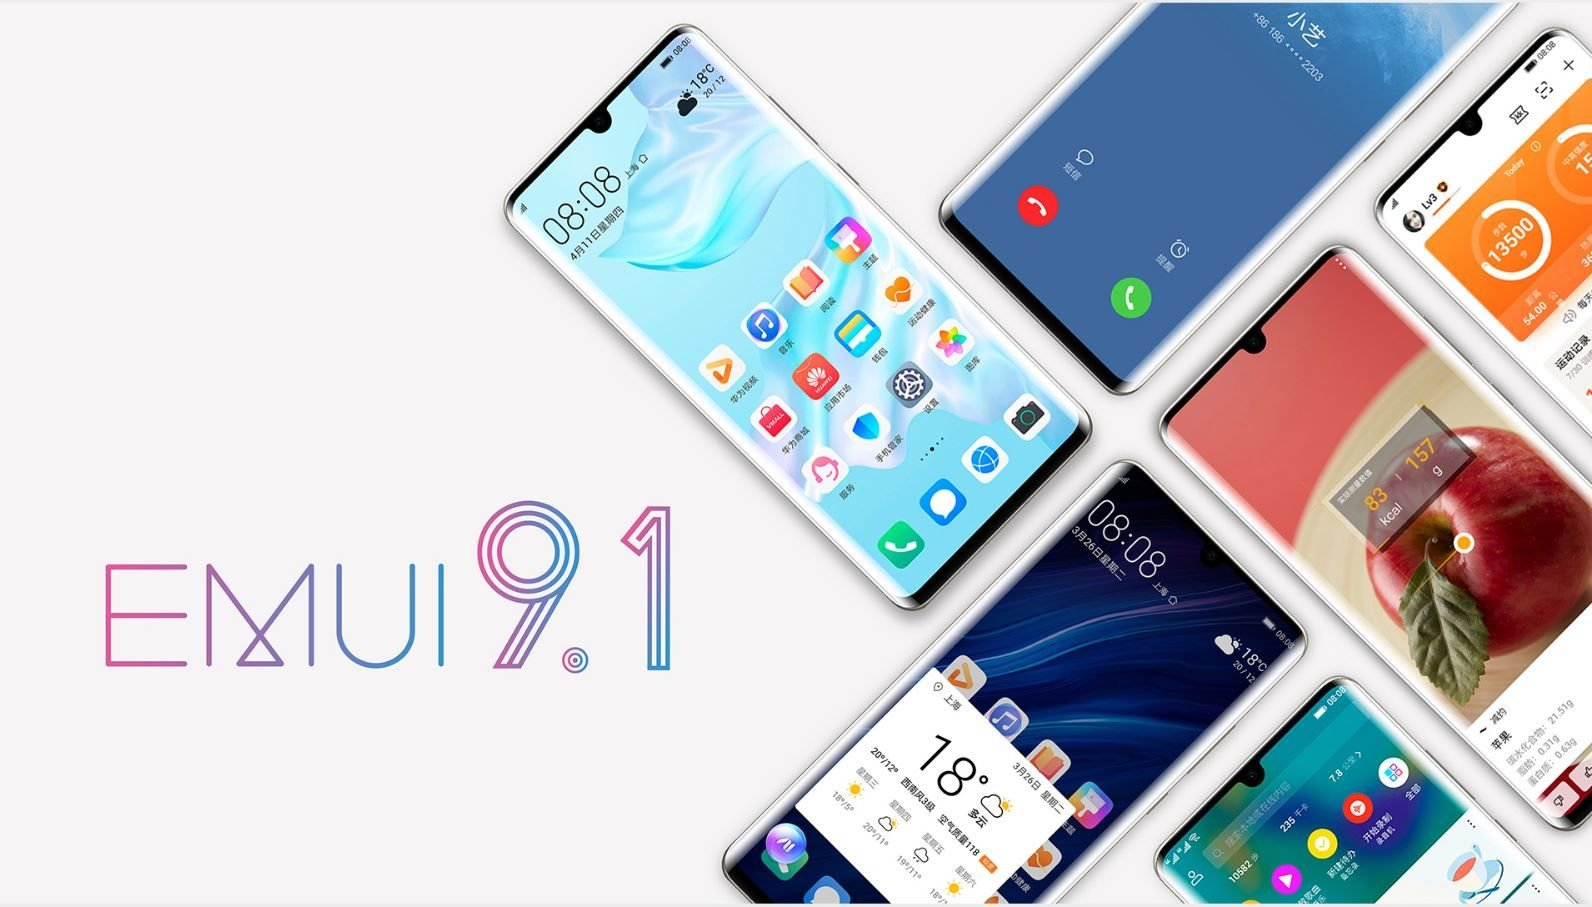 EMUI 9 1 Beta Available for Huawei Mate 20 Lite, P10, Nova 3, 3i, 2s